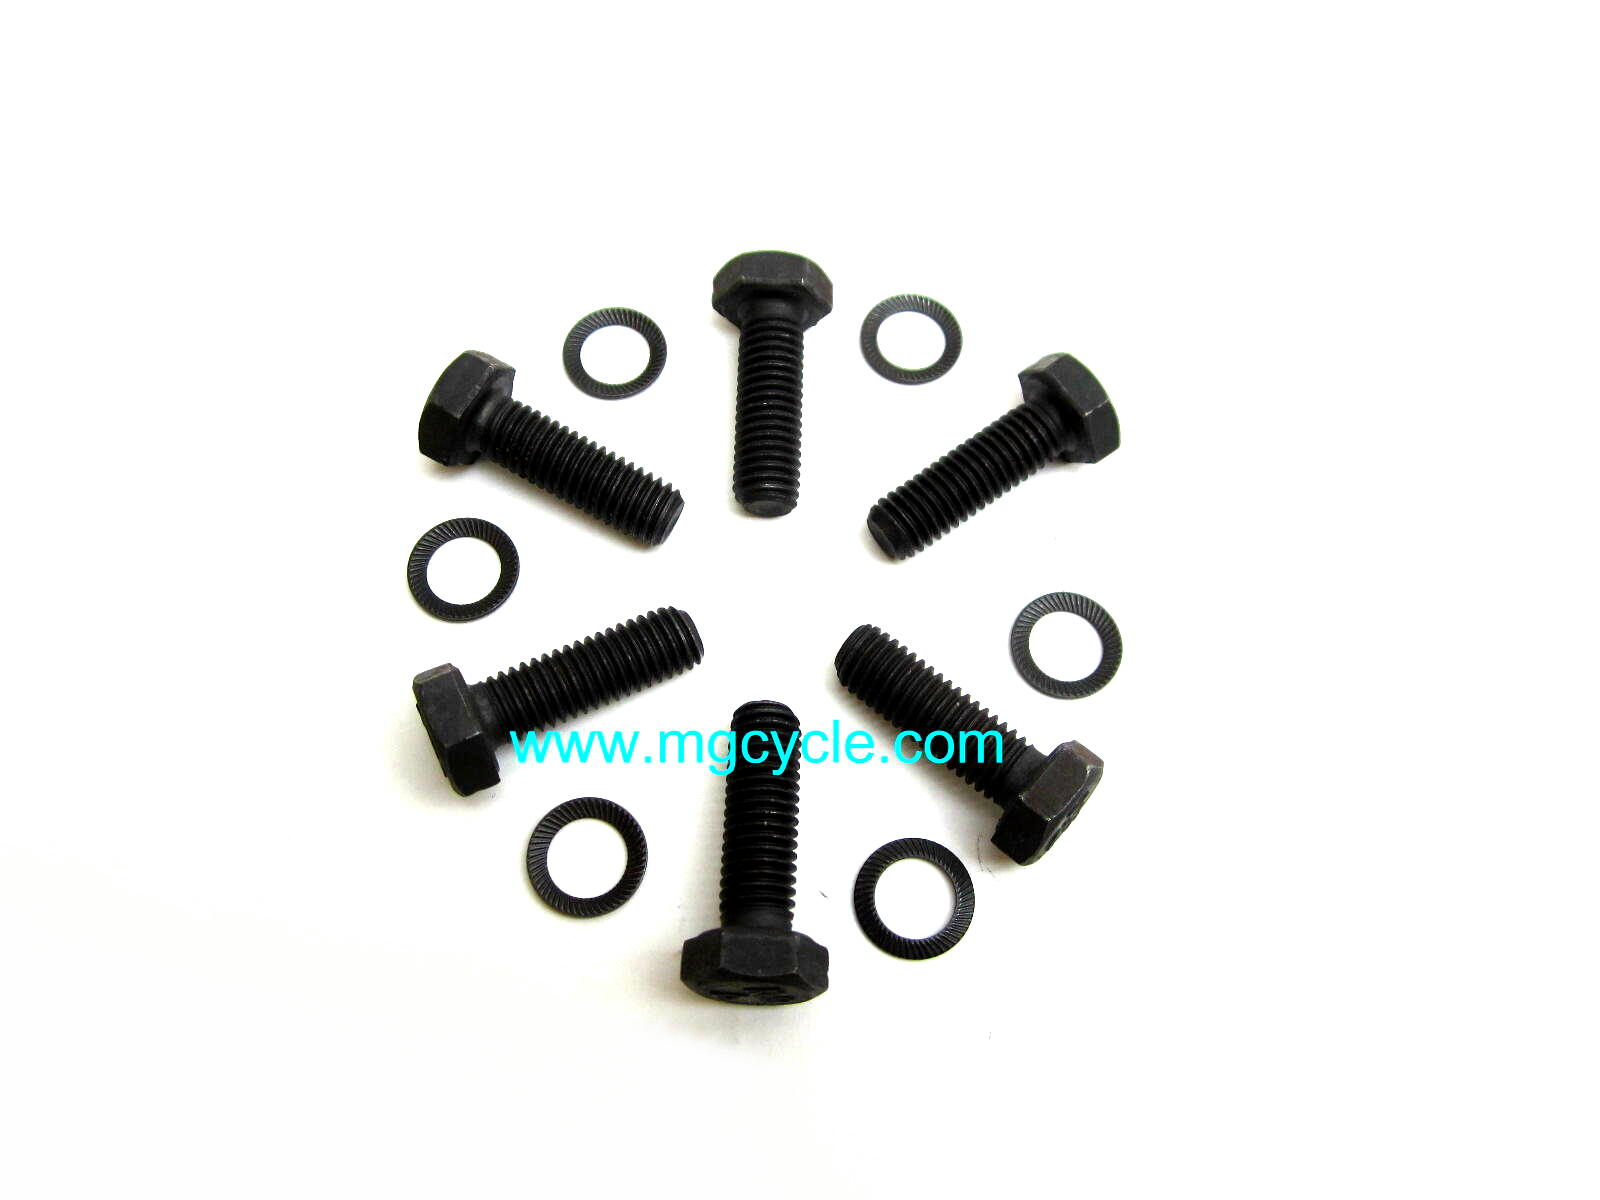 Flywheel bolt kit, 10.9 bolts with schnor lock washers